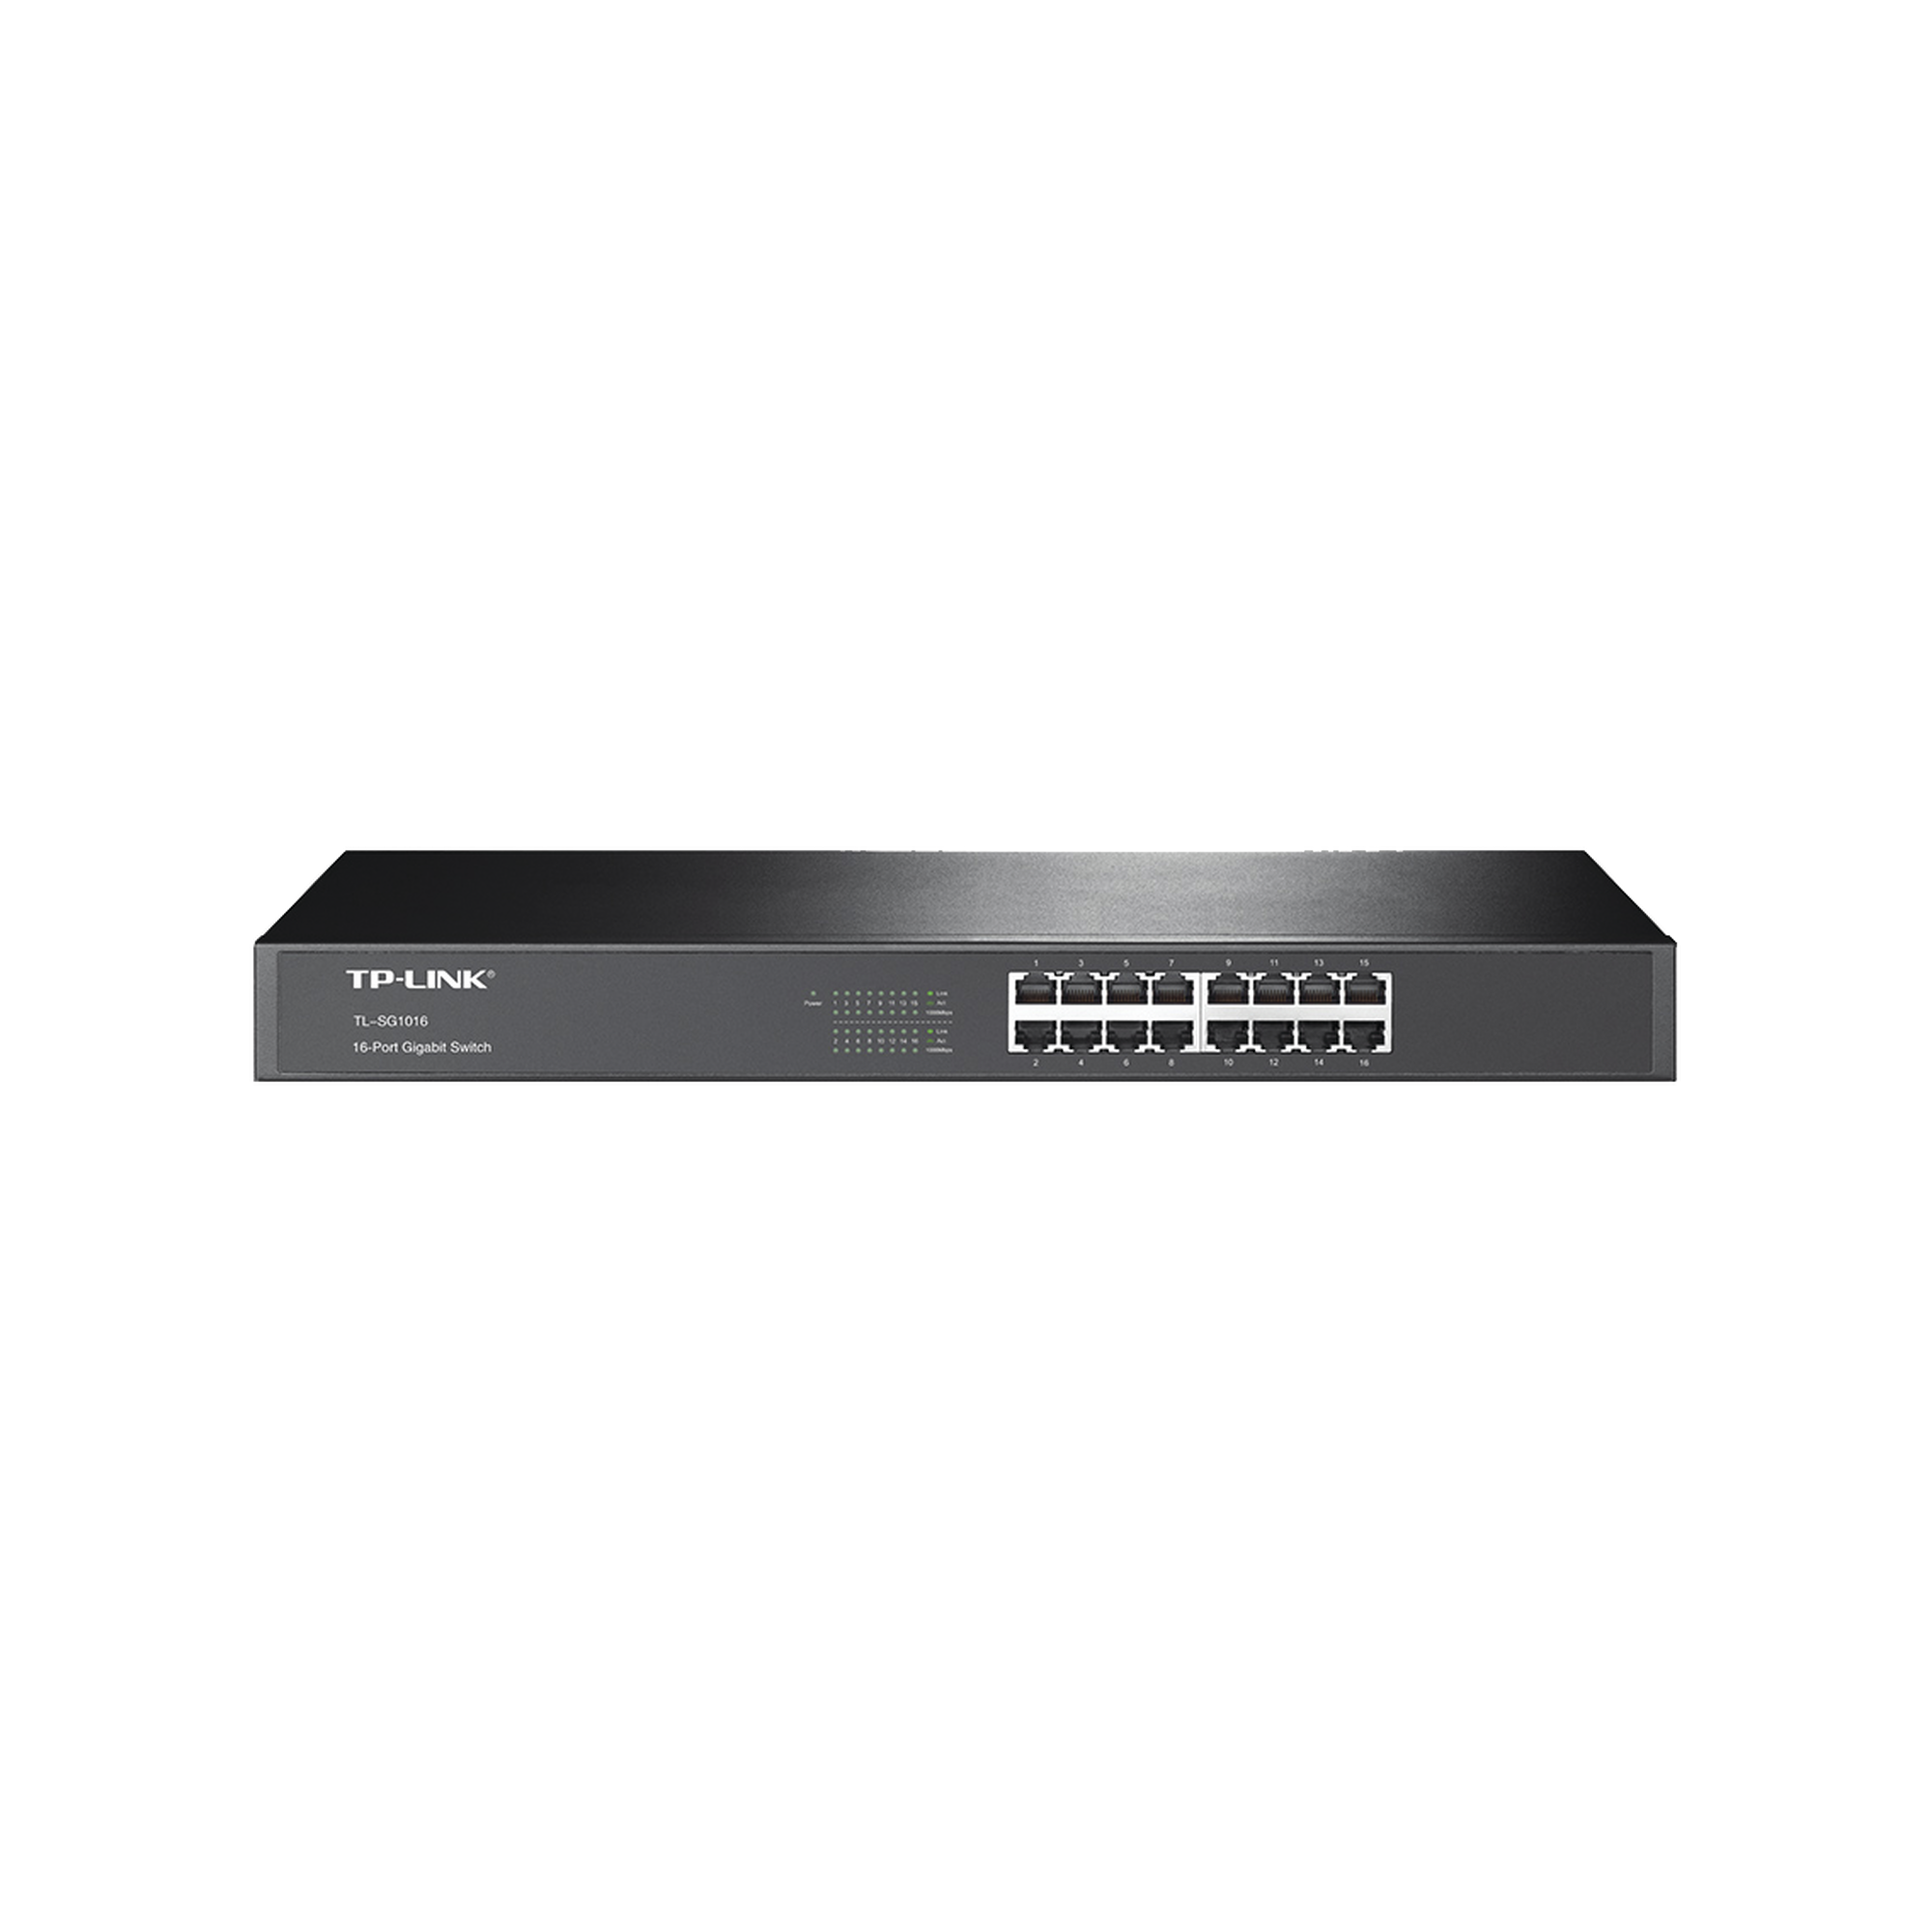 Switch Gigabit no administrable de 16 puertos 10/100/1000 Mbps para rack